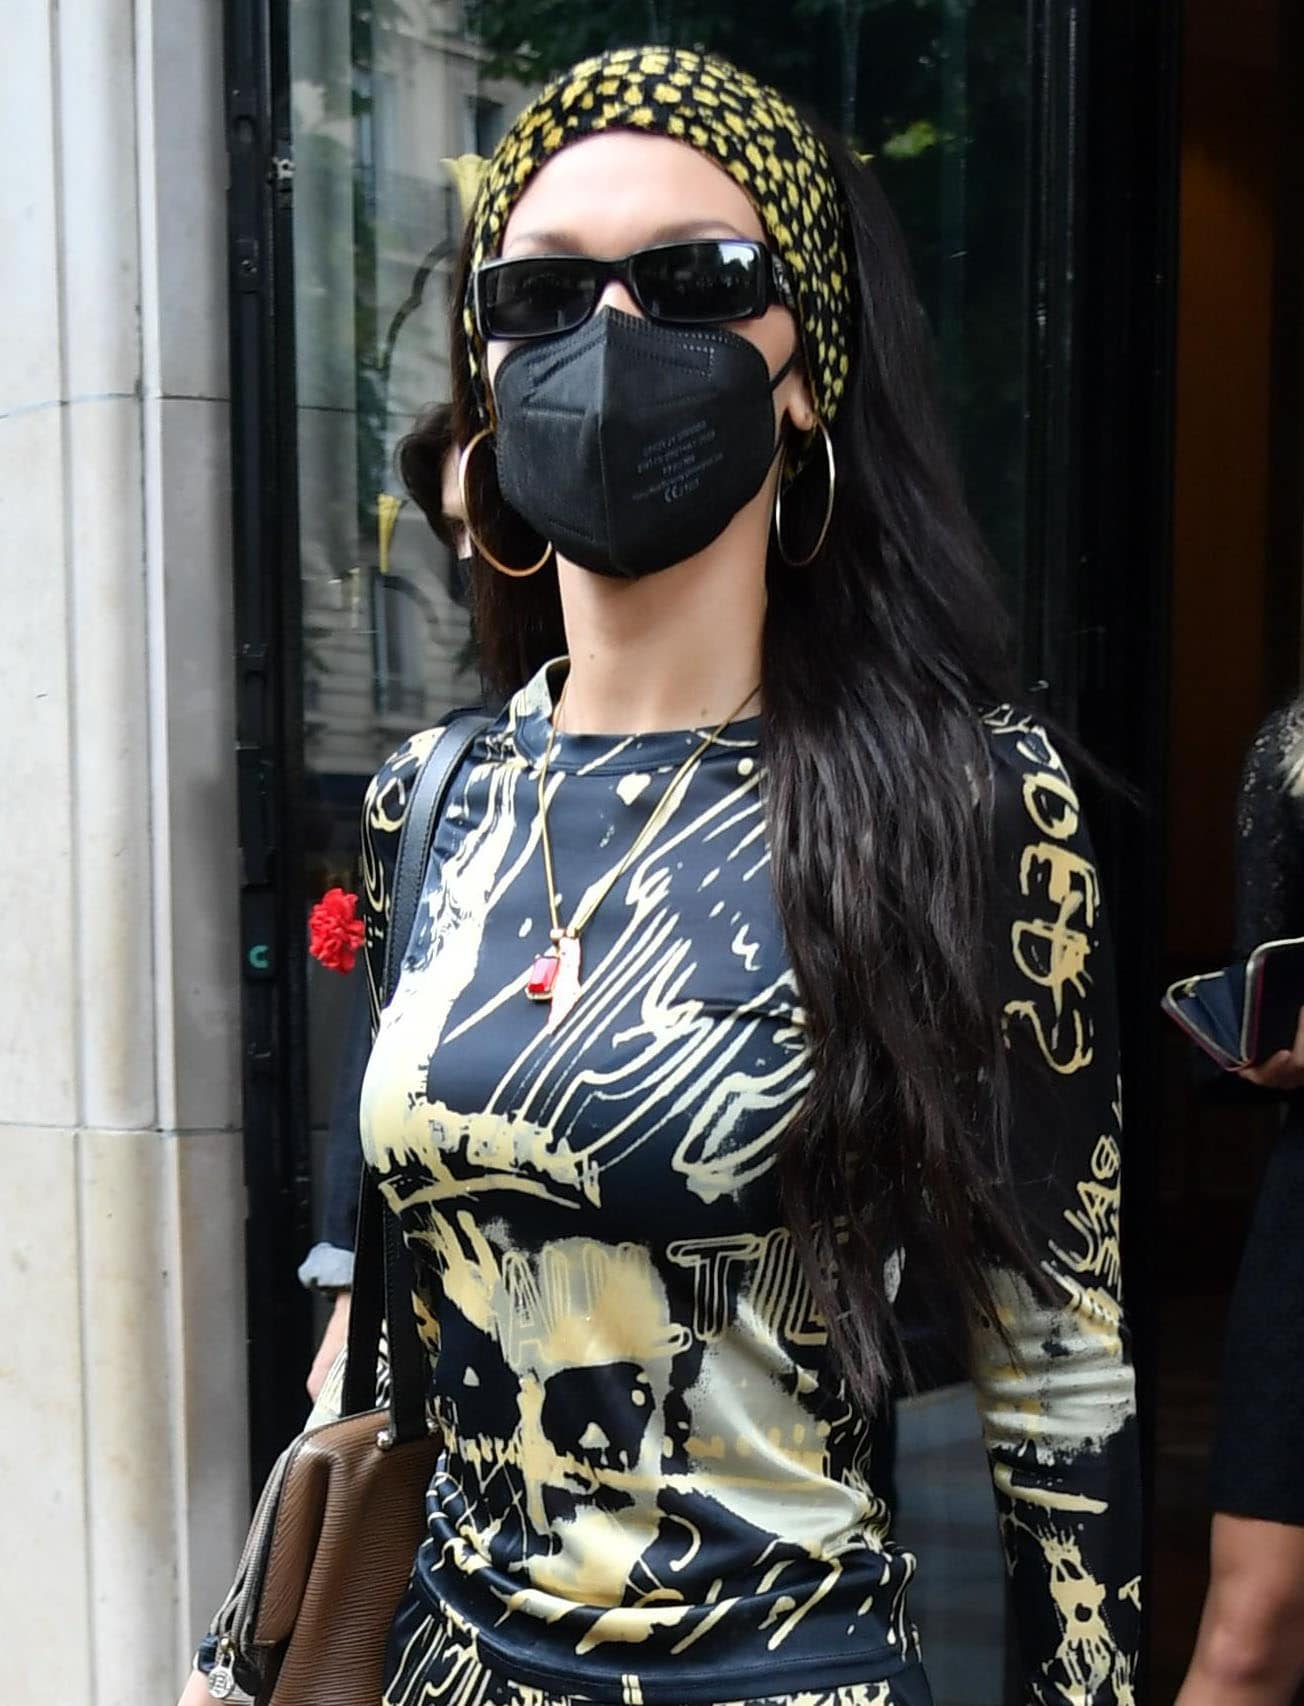 Bella Hadid coordinates her outfit with her dotted bandana headband